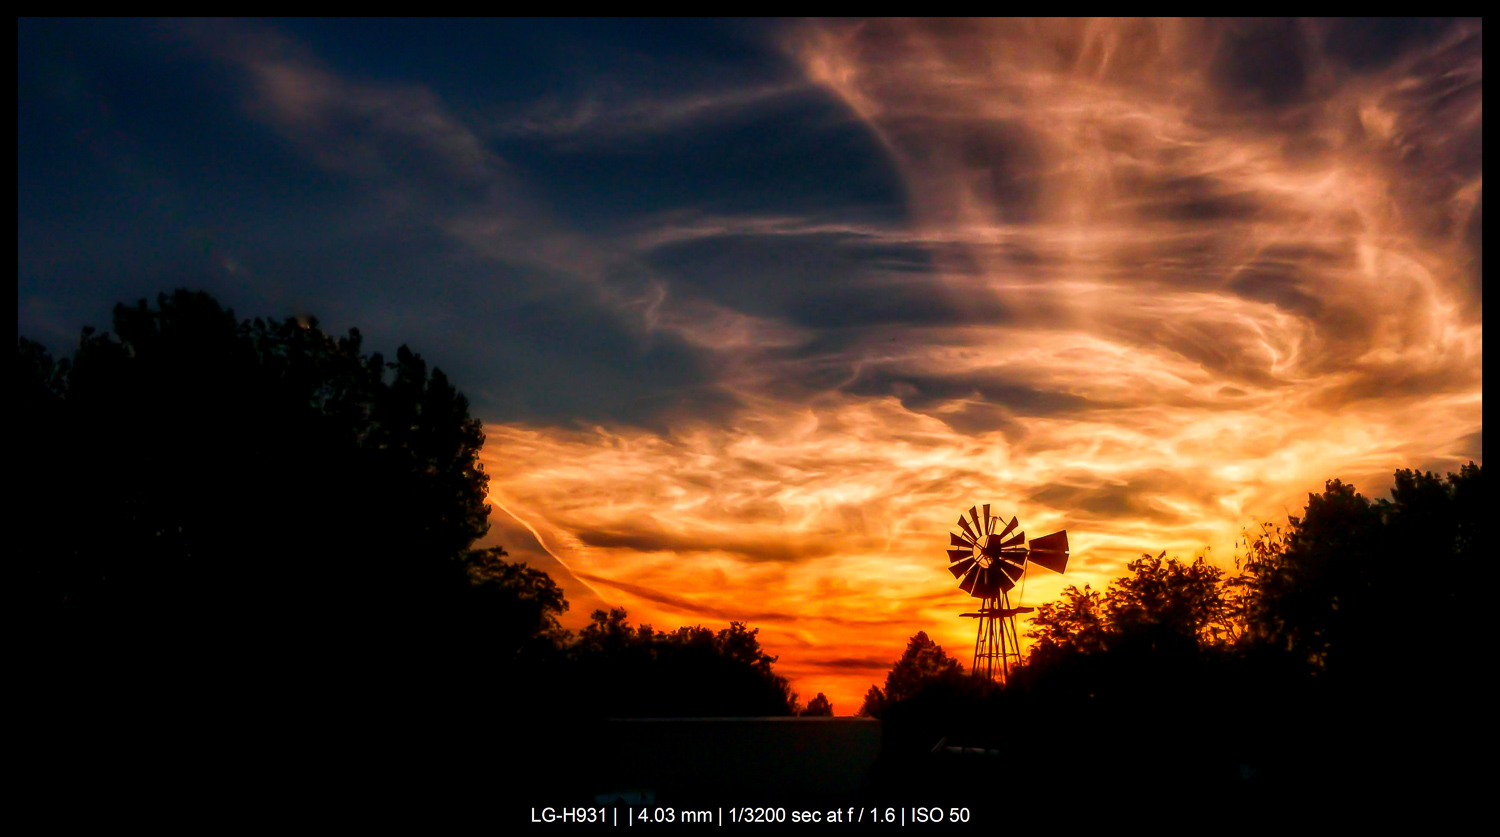 trees and windmill at sunset